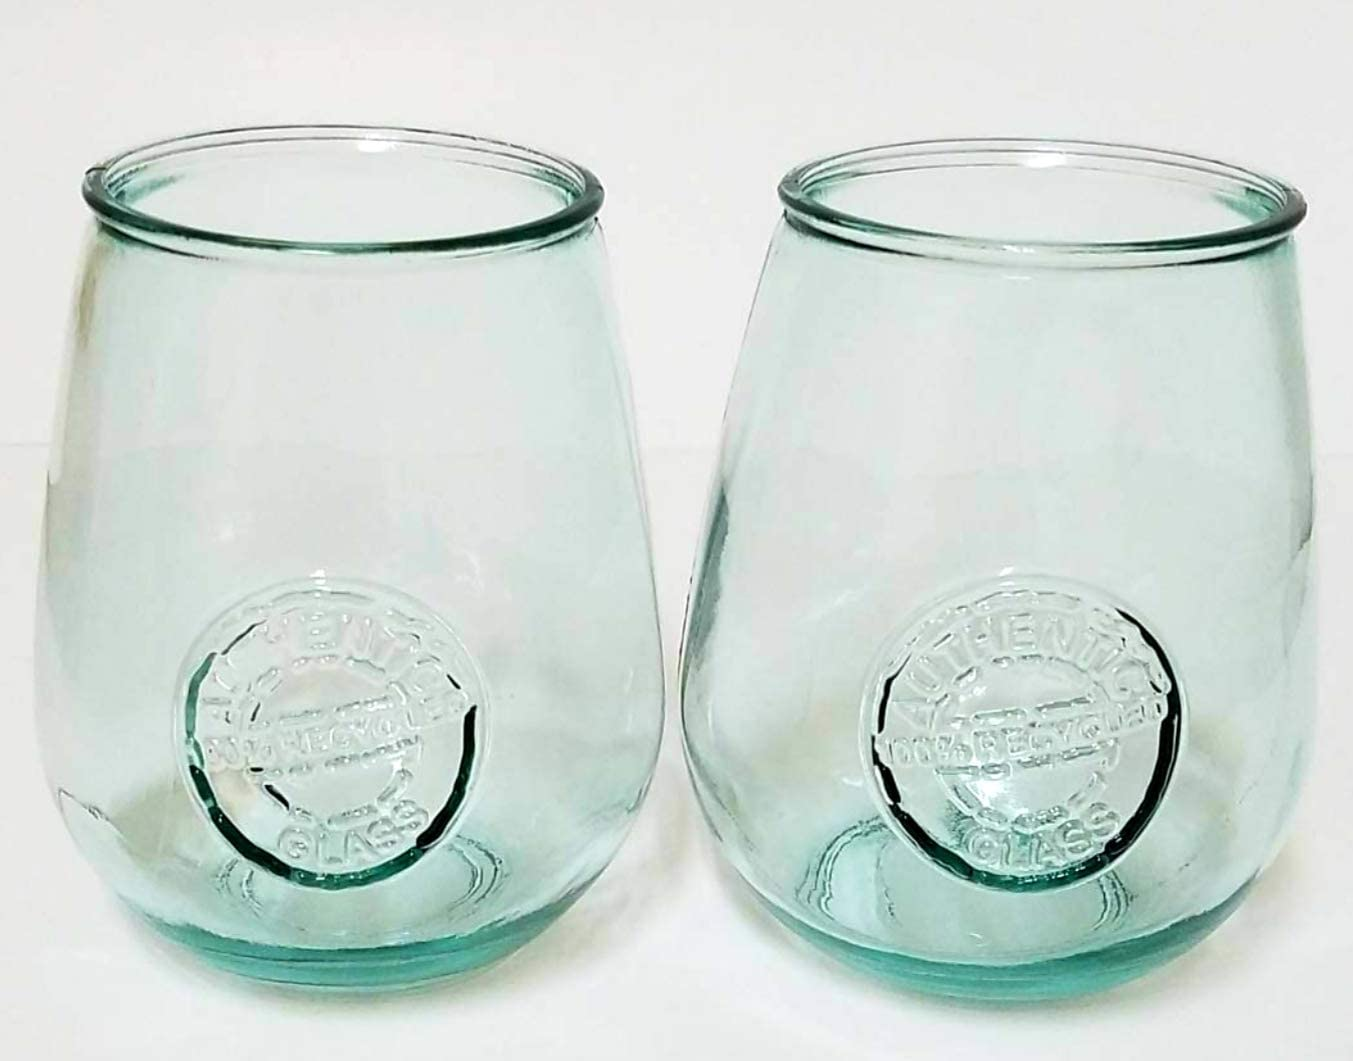 6 San Miguel Goblets Clear Glasses 100/% Recycled Glass Authentic 650cc 22oz